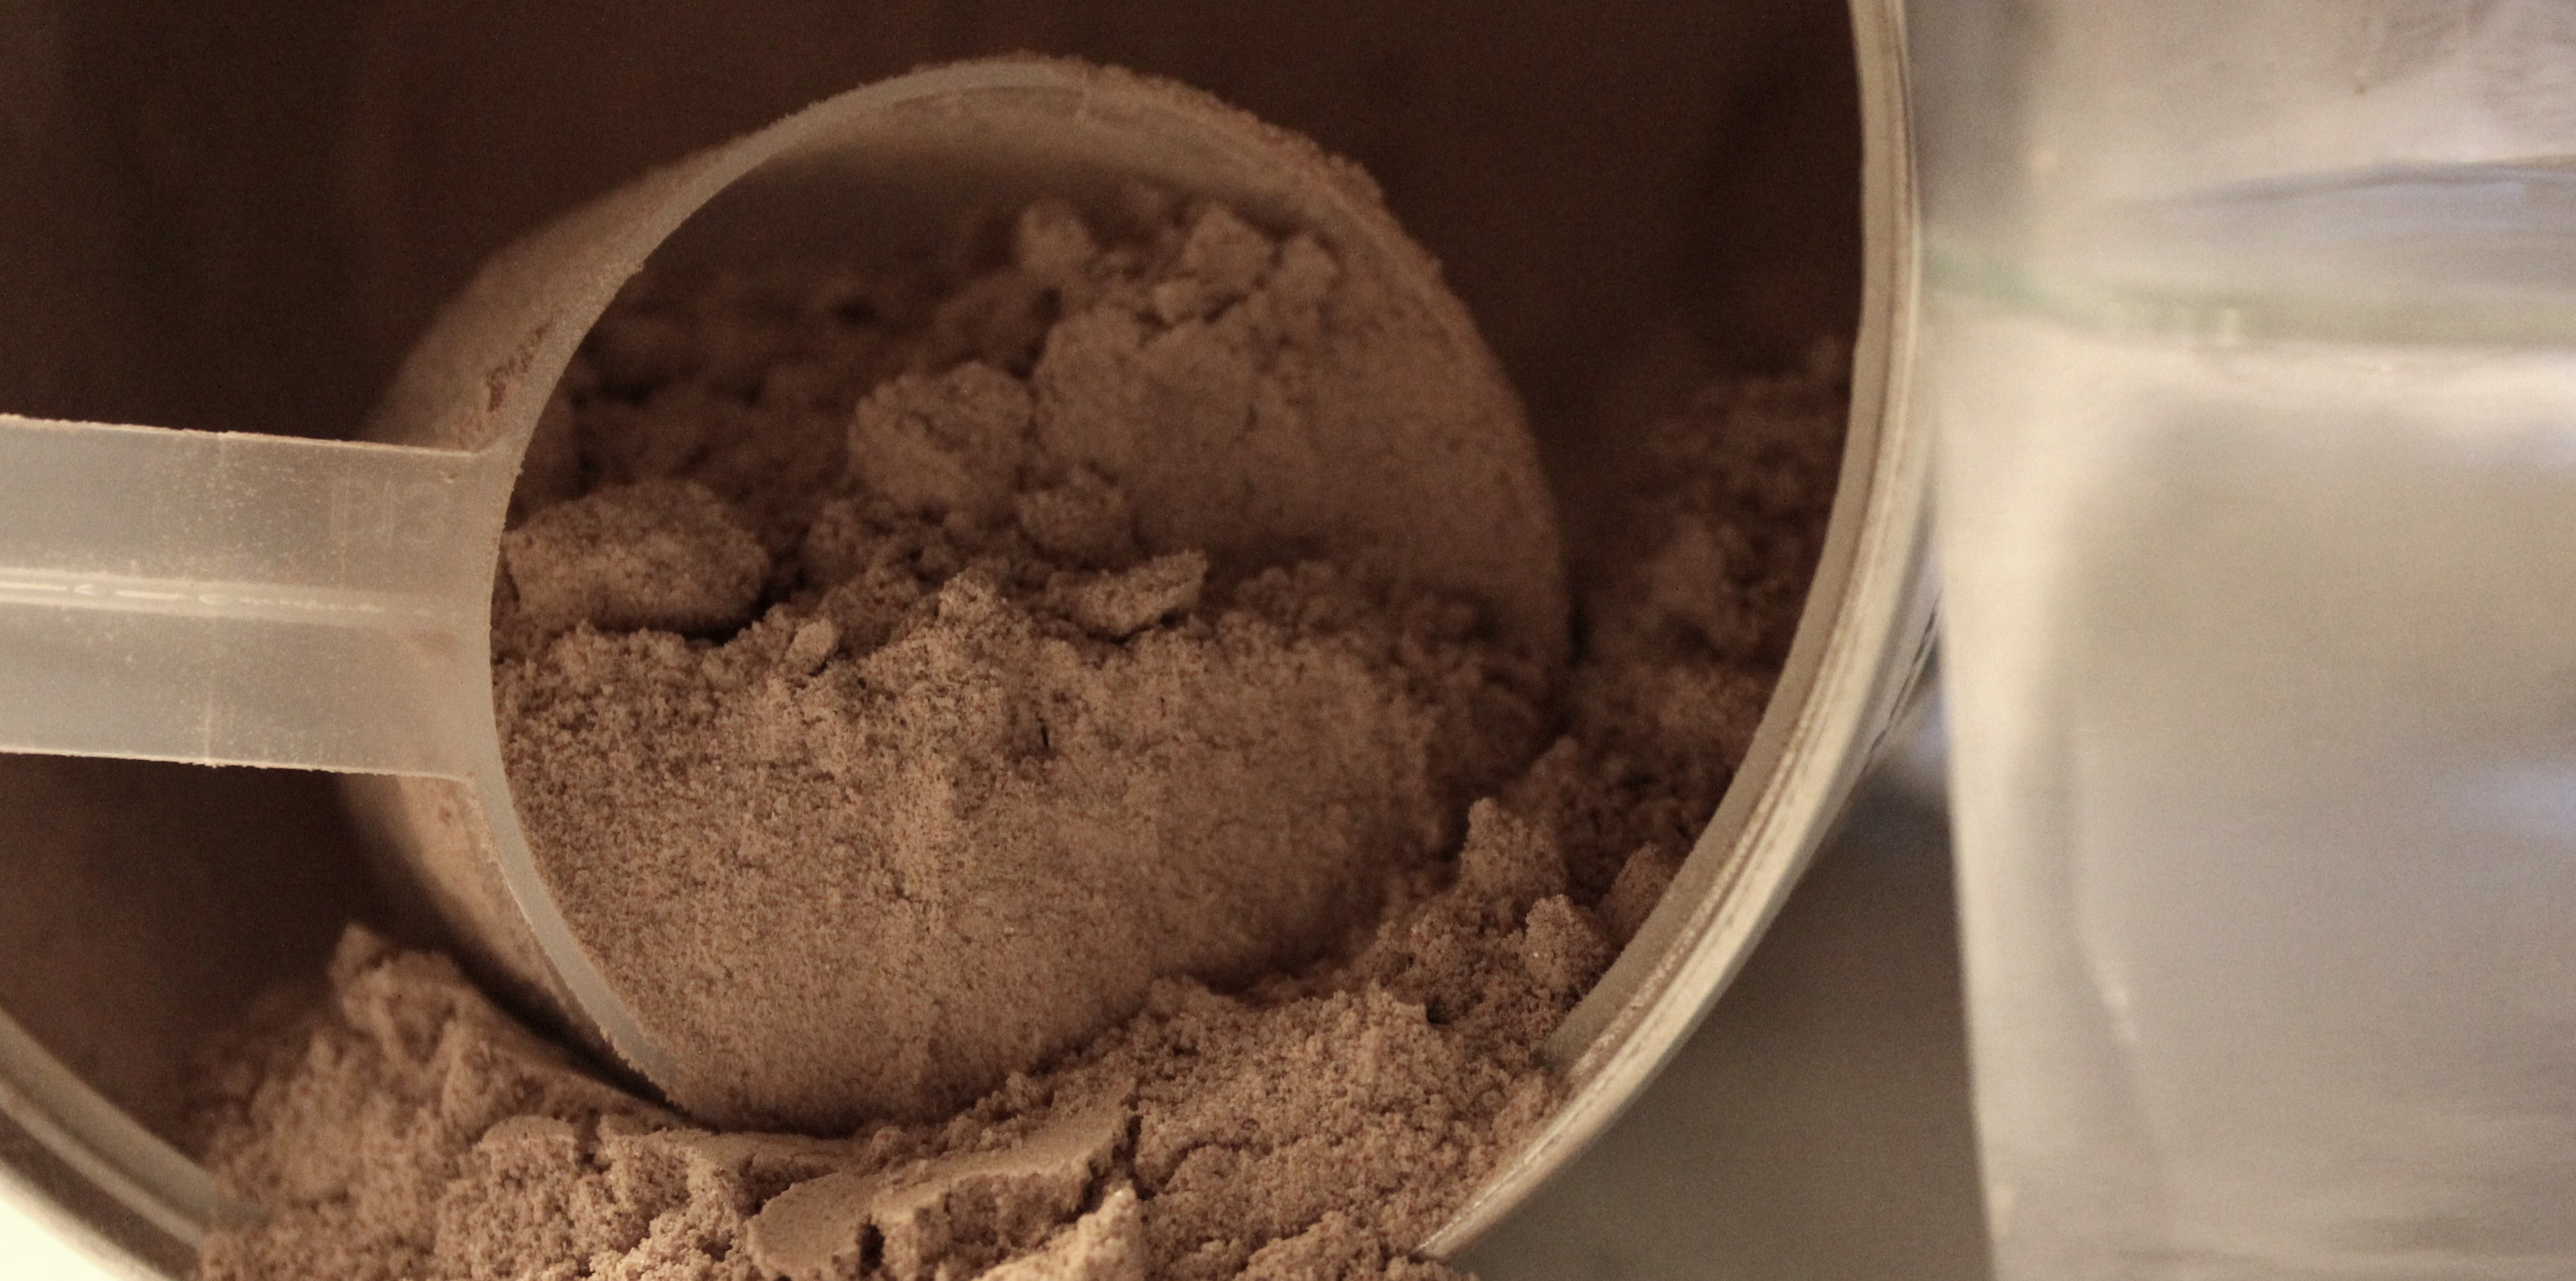 Protein Powder Afficionados Are Literally Paying to Poop